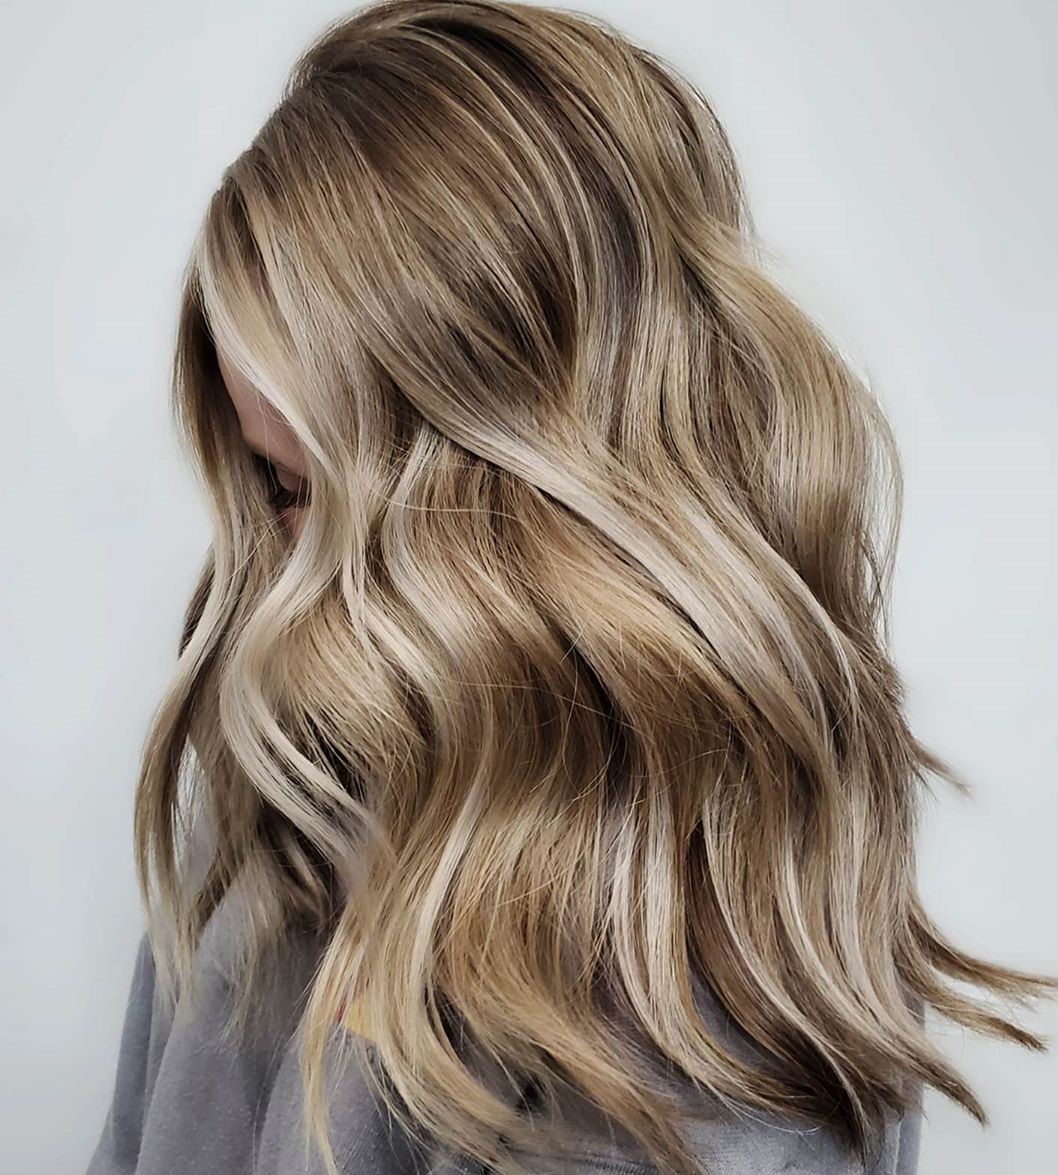 Layered Dirty Blonde Hair Color Is The Latest Hairstyle Trend